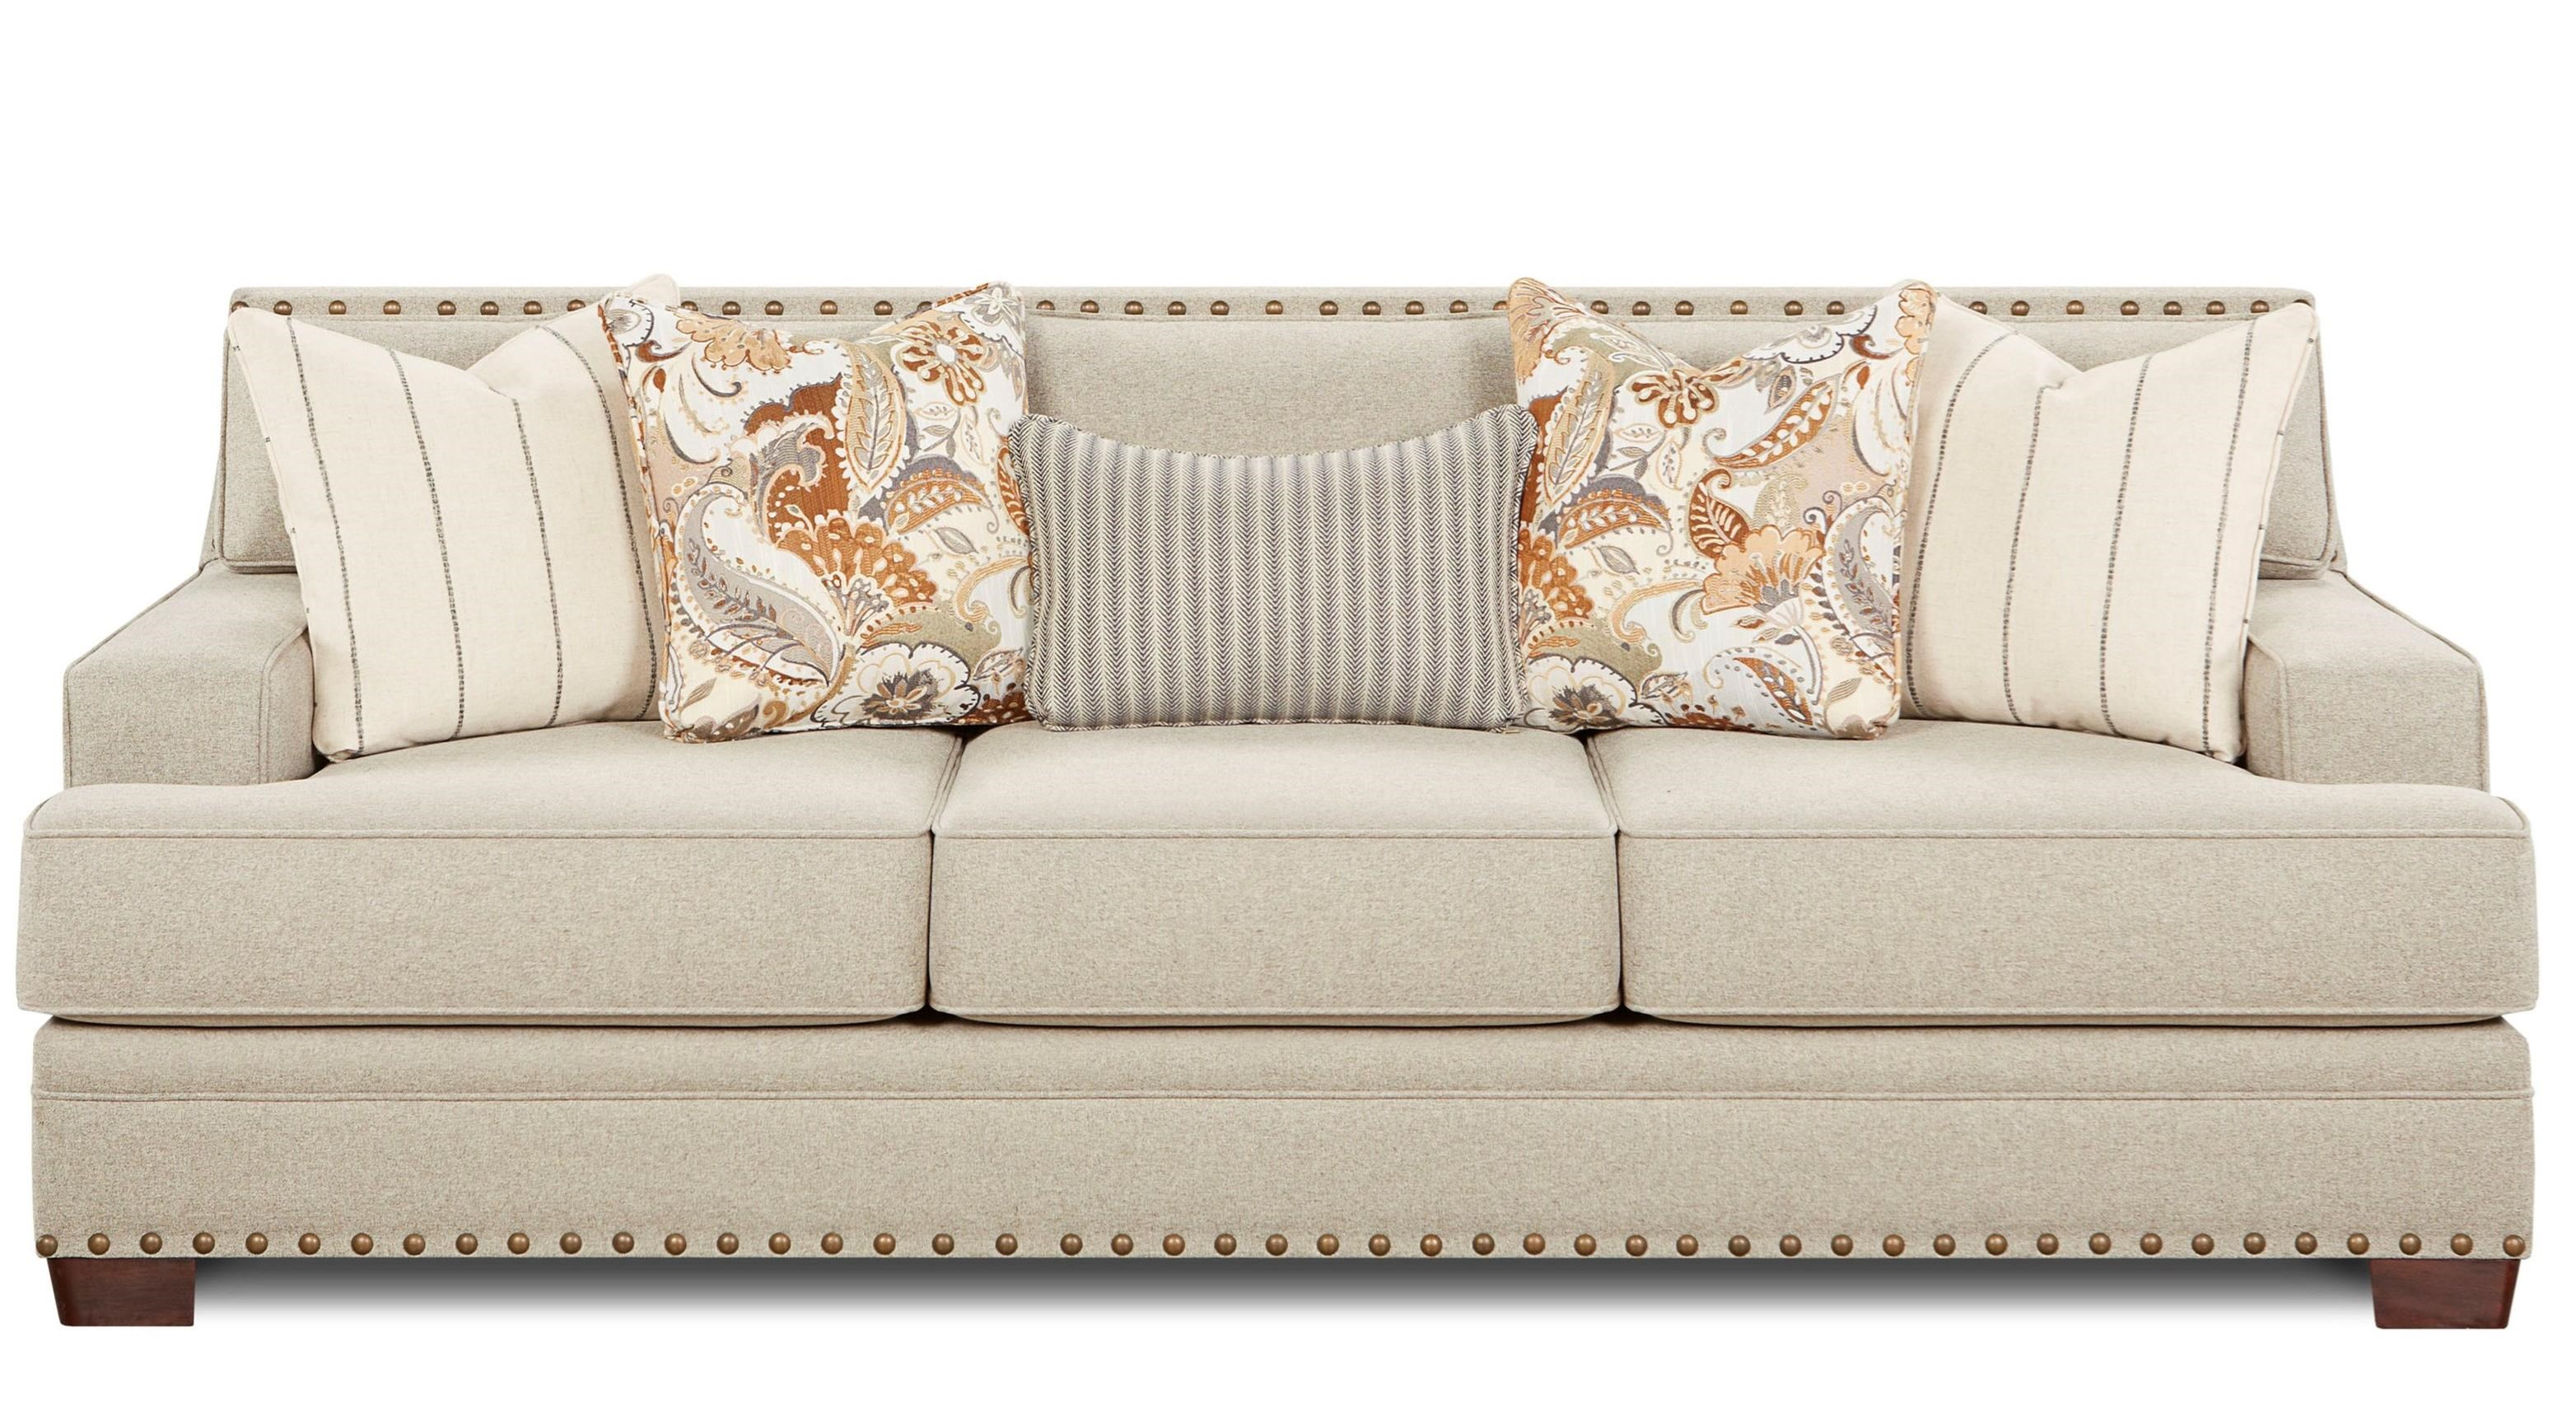 Fusion Furniture Moore Metal Contemporary Sofa With Track Arms And Nail Head Trim Royal Furniture Sofas